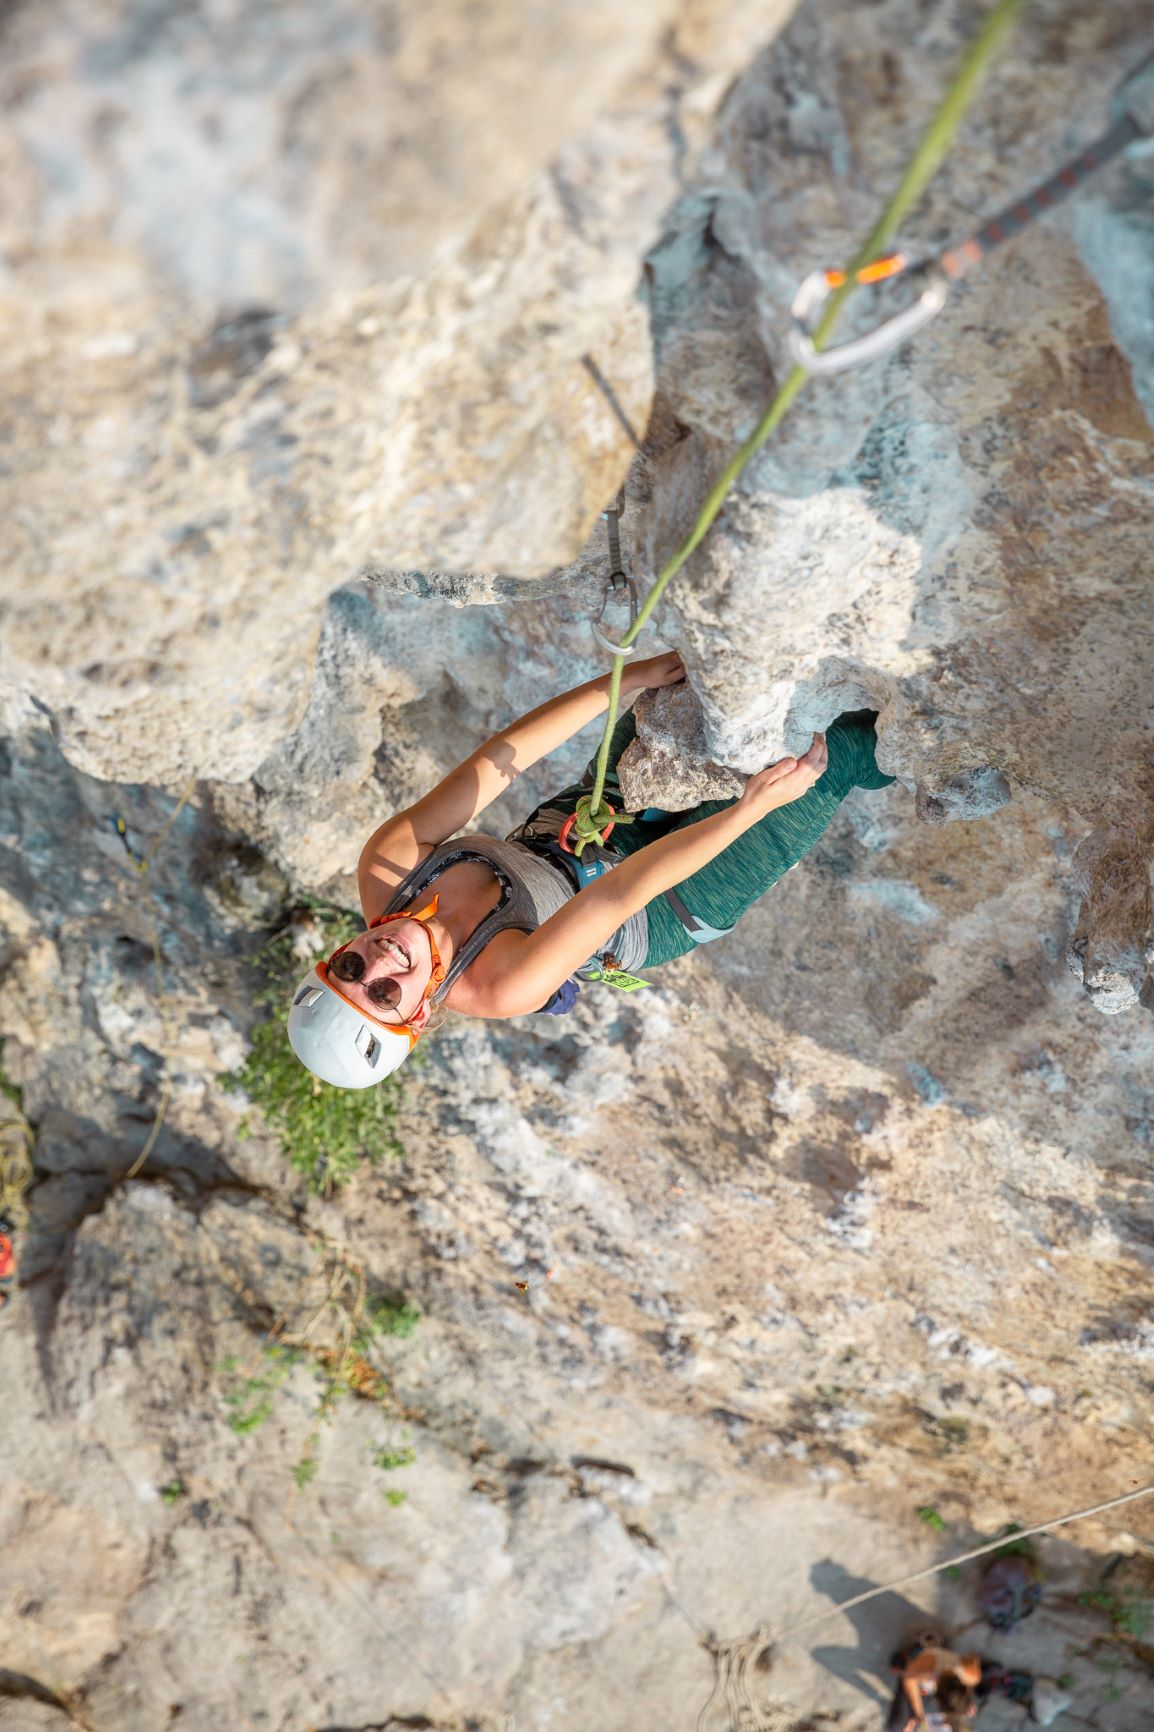 A woman climber seconding a route in Kalymnos